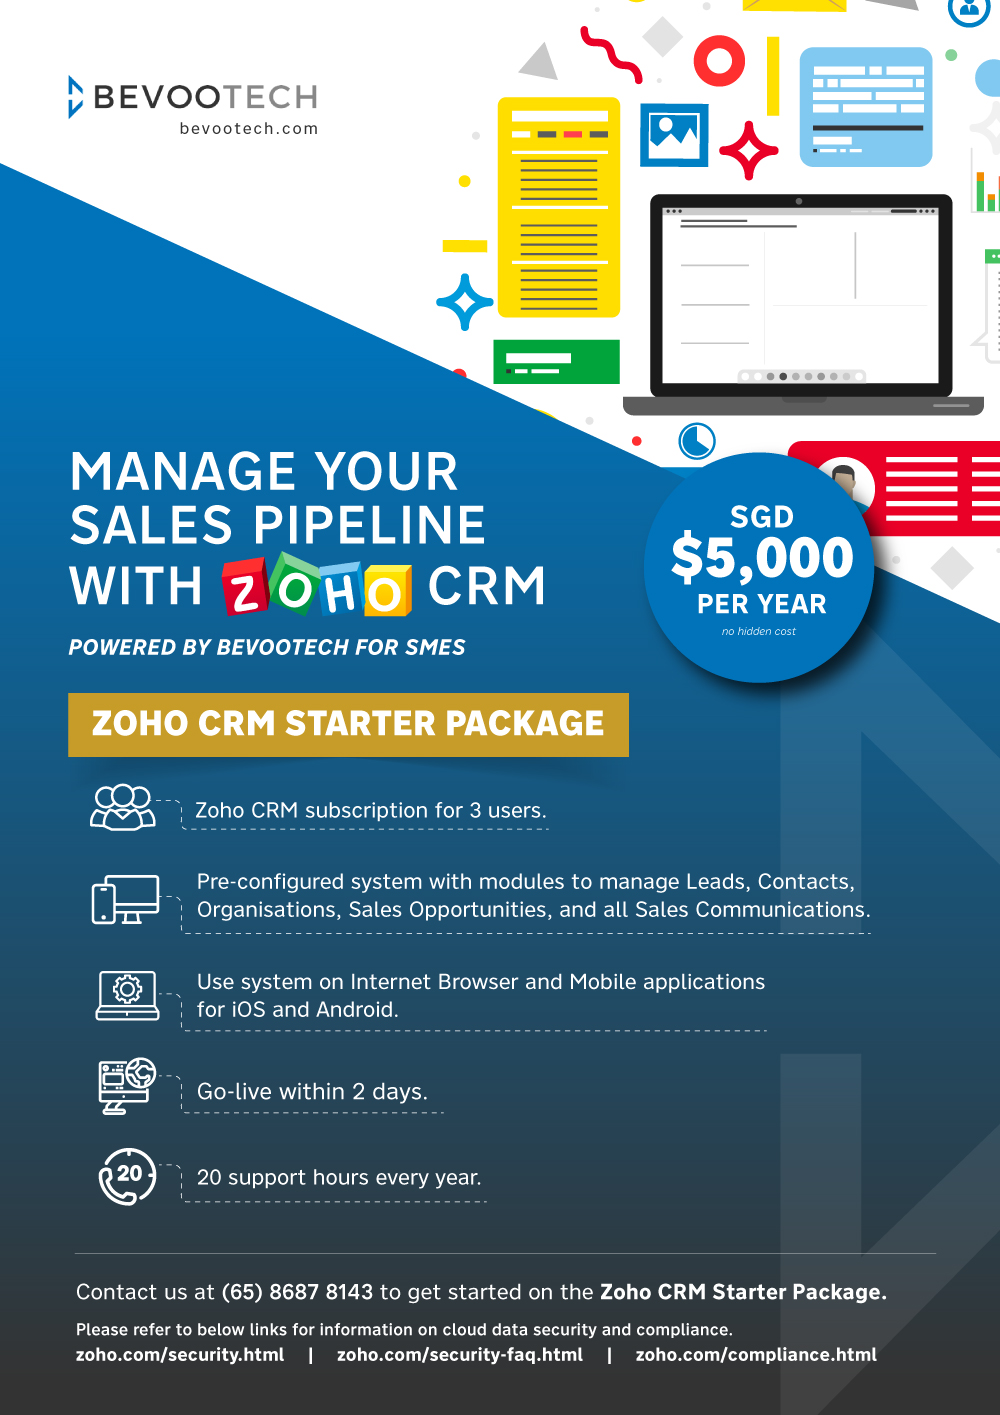 Zoho CRM Promotion for SMEs 1